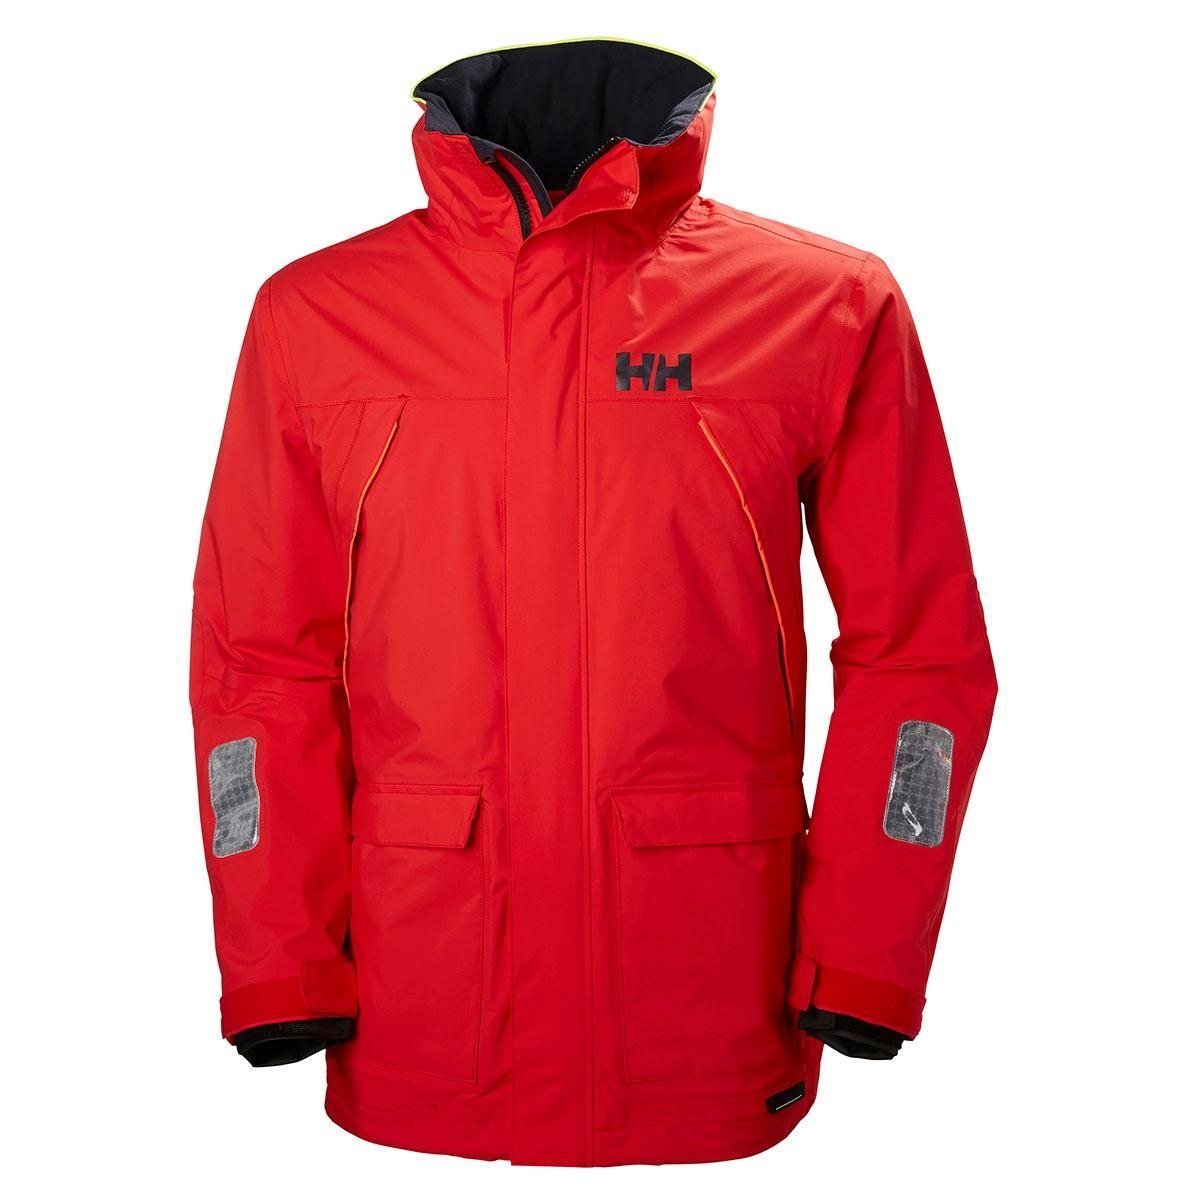 Helly Hansen PIER JACKET 222 Alert RØD str. XL